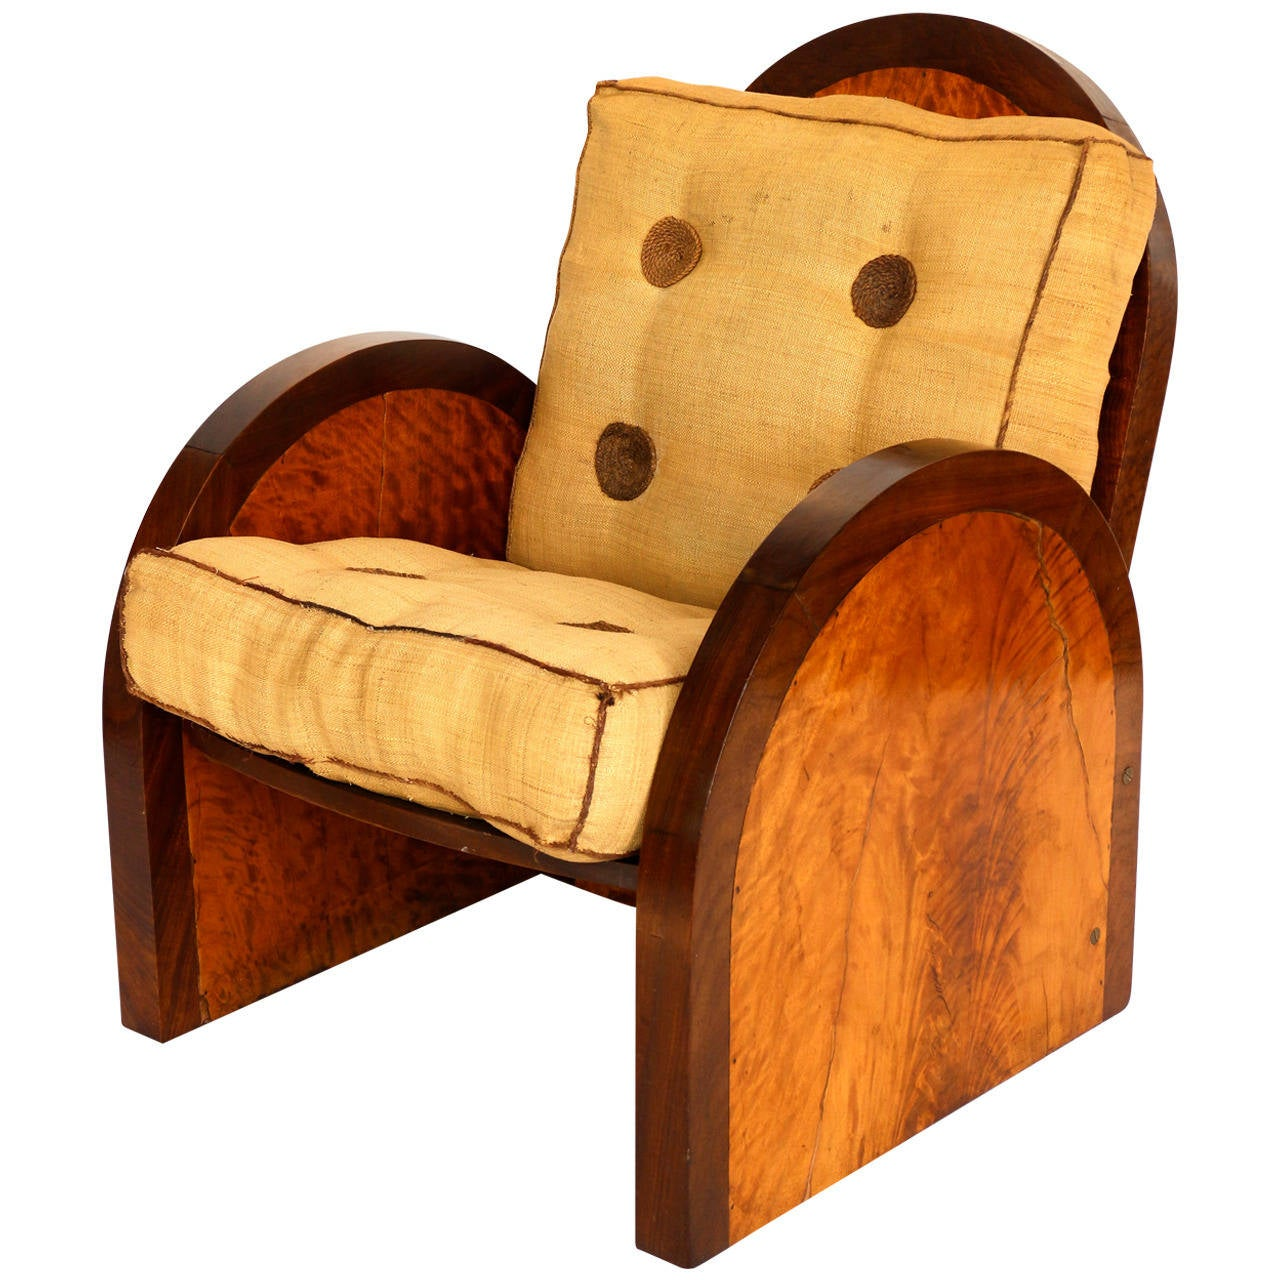 Art deco bergère chair in yellow wood at stdibs